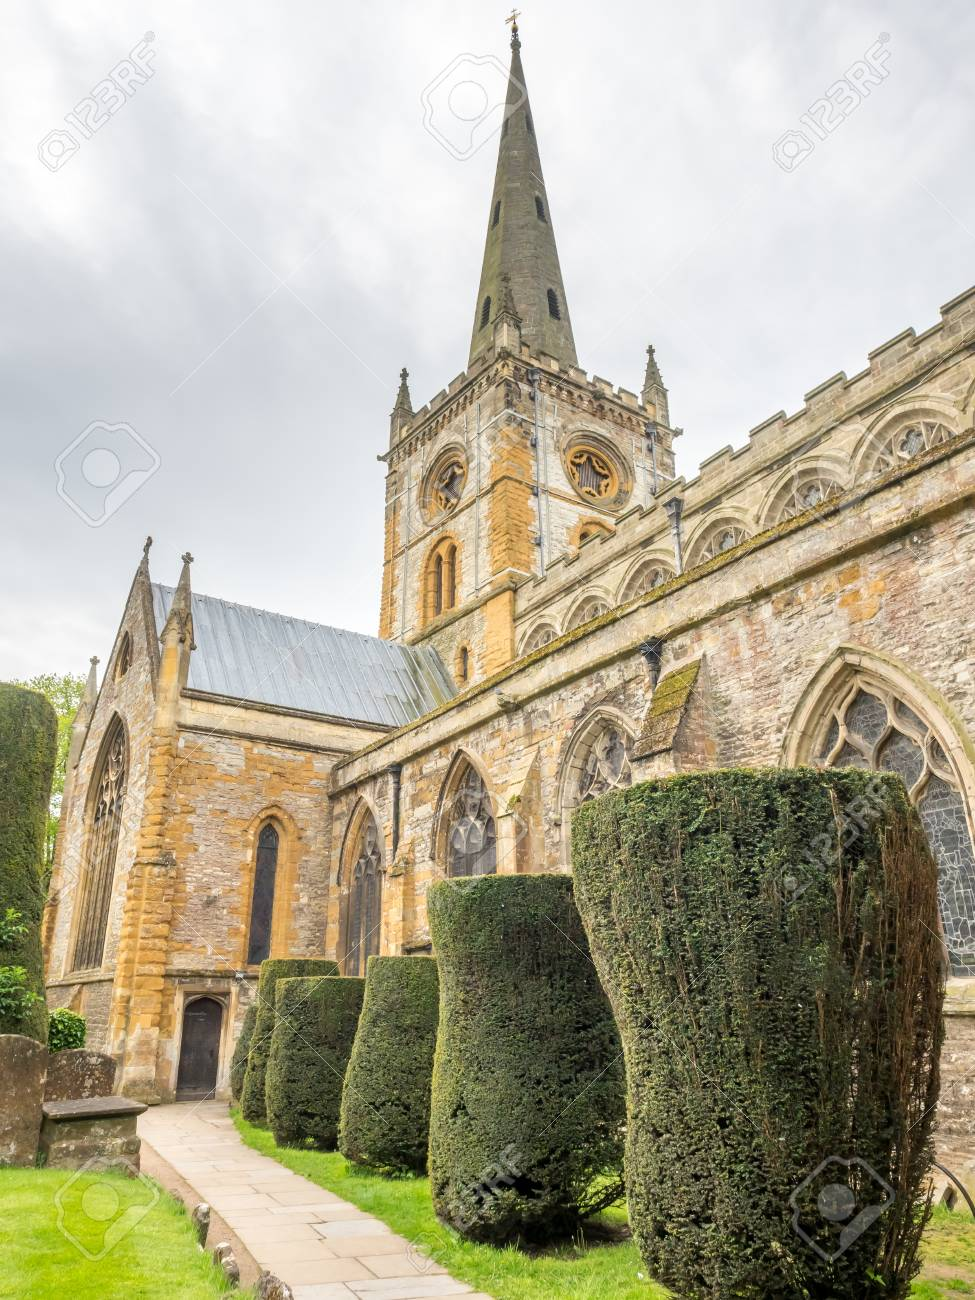 English Gothic Architecture Church In Stratford With Surrounding Park Under Cloudy Sky Stock Photo